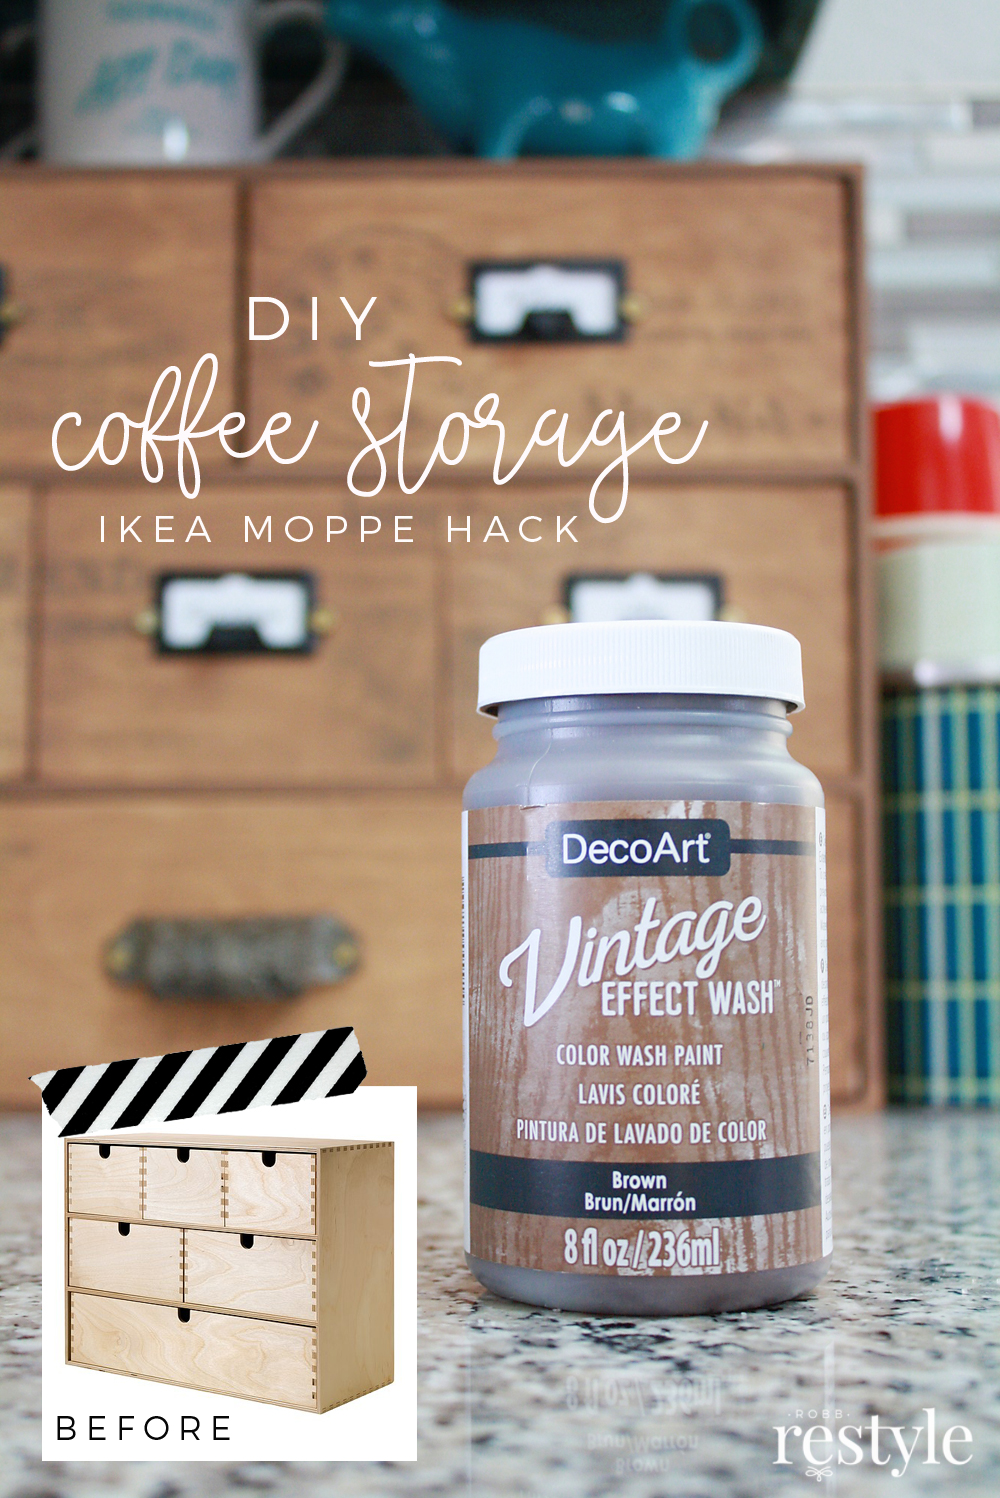 Storage Chest Ikea Ikea Moppe Hack Coffee Storage Idea Robb Restyle